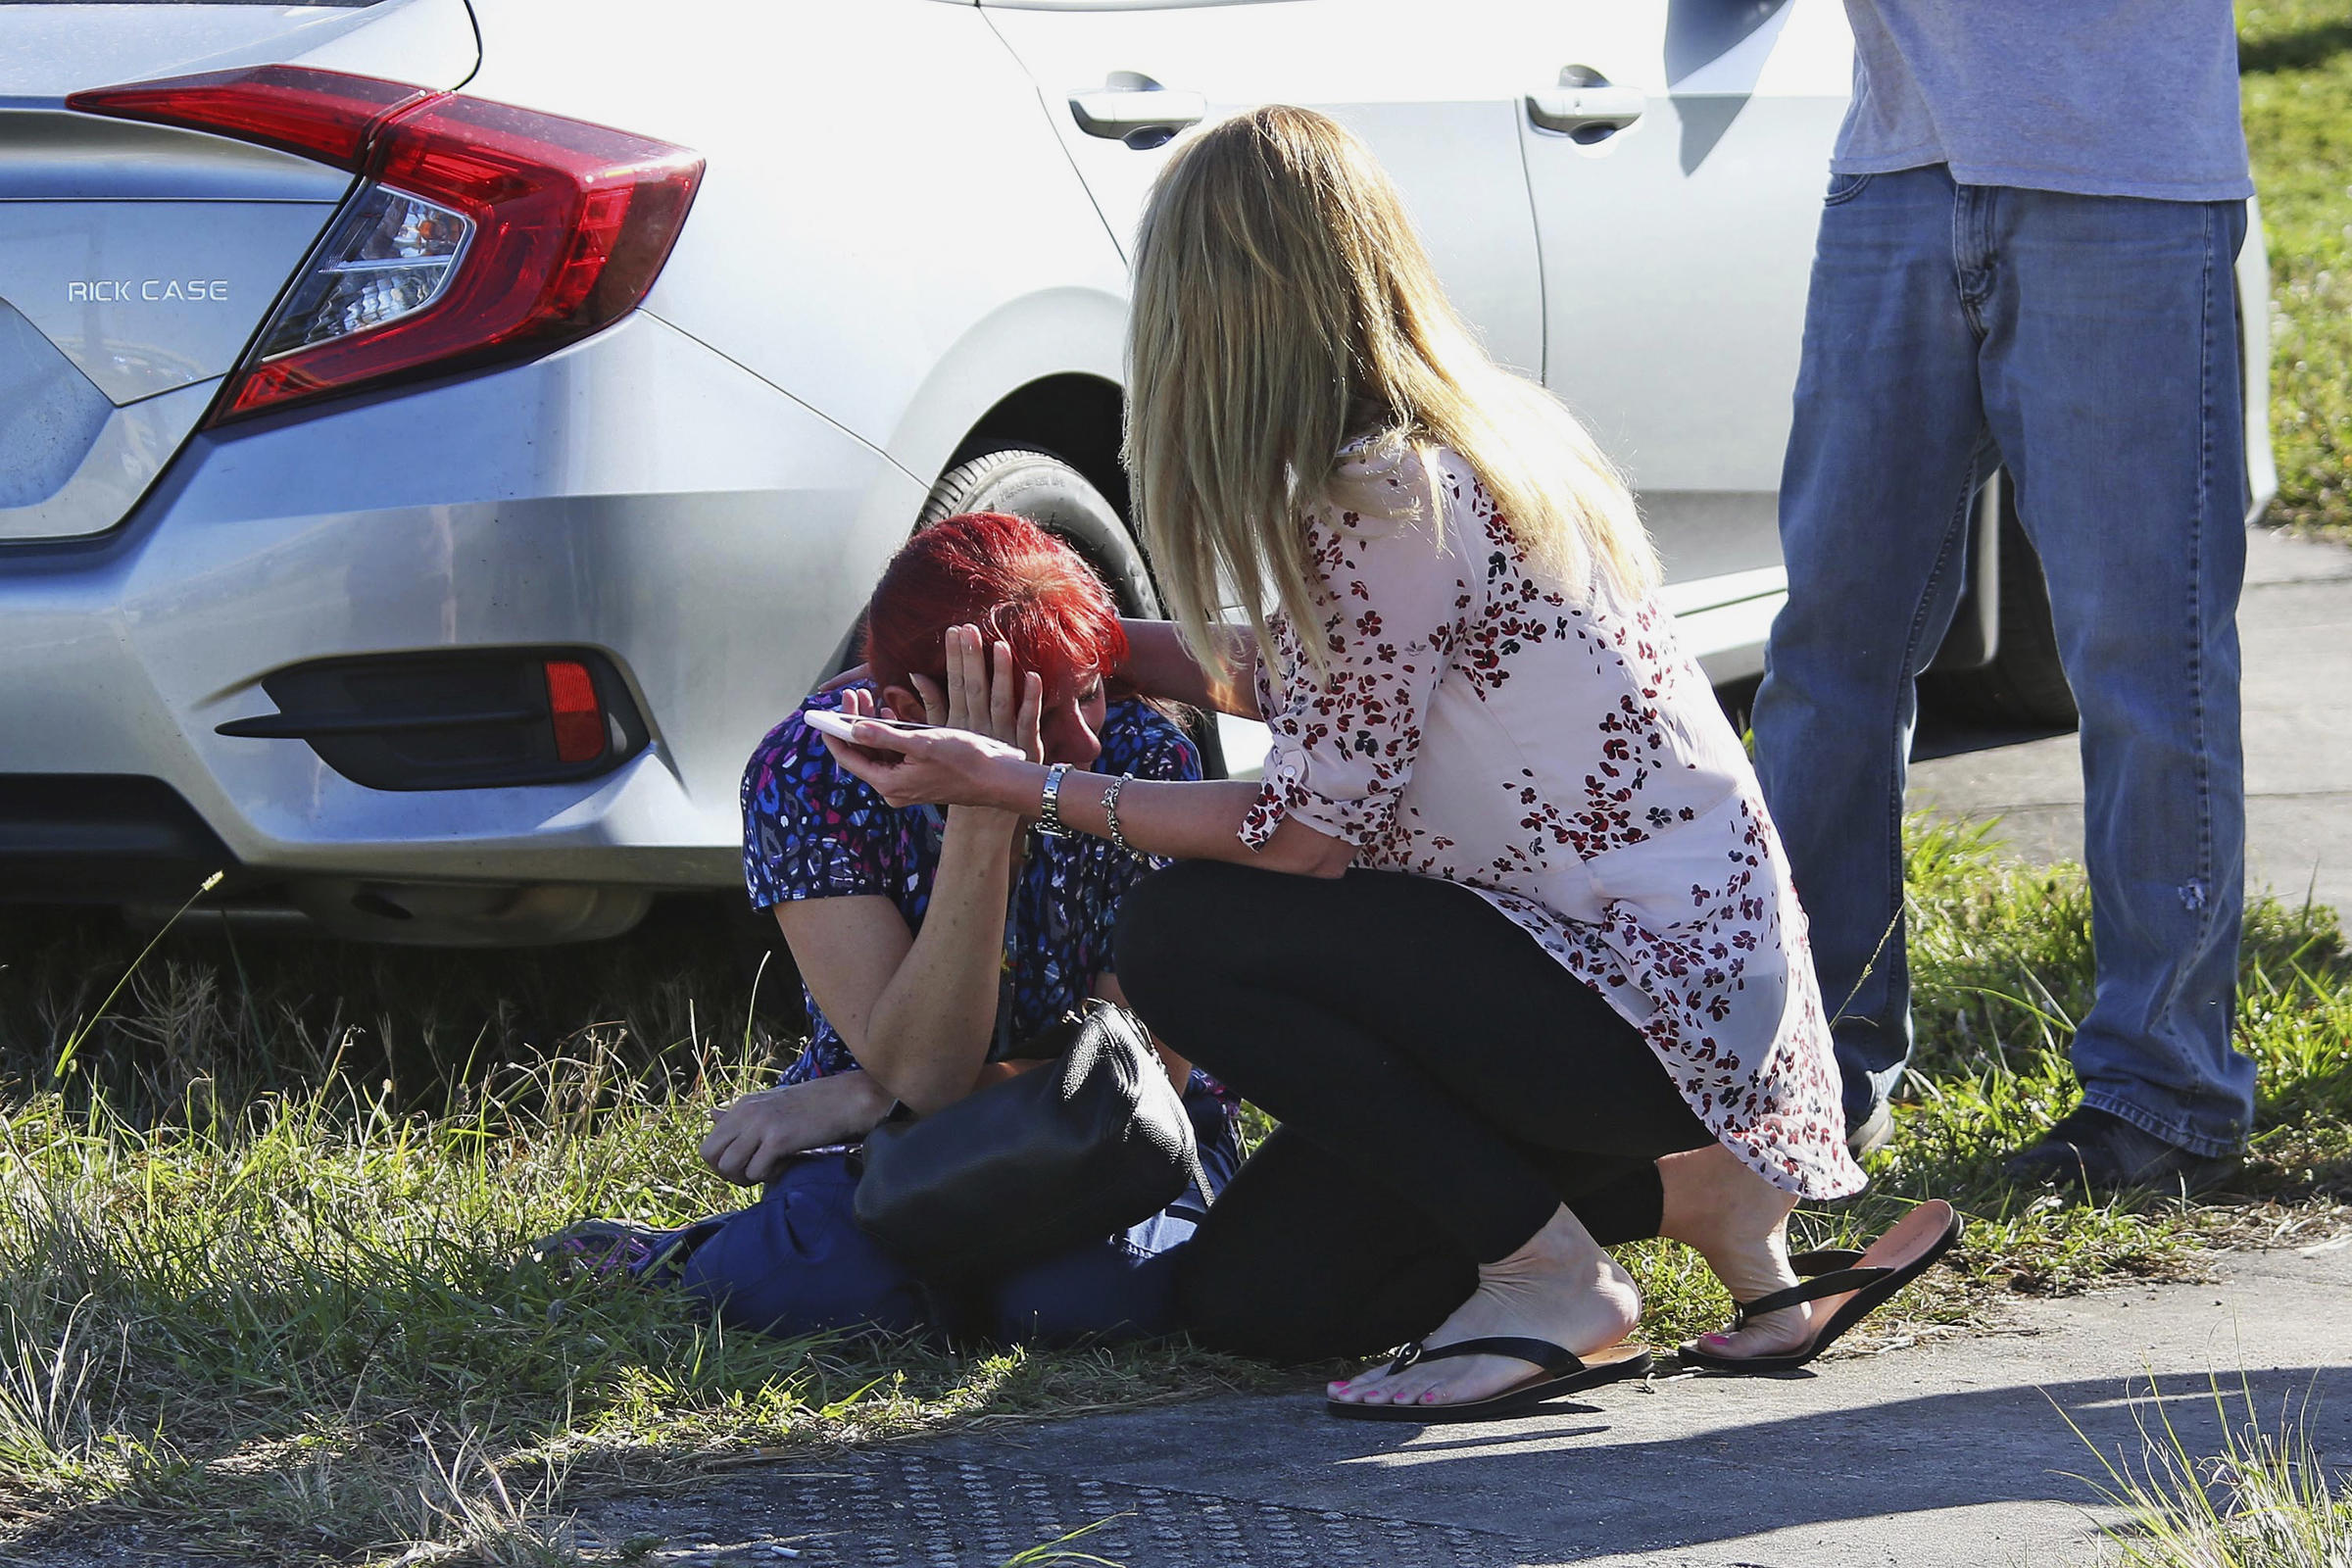 Florida HS Mass Shooting Suspect Charged With 17 Counts Of Premeditated Murder